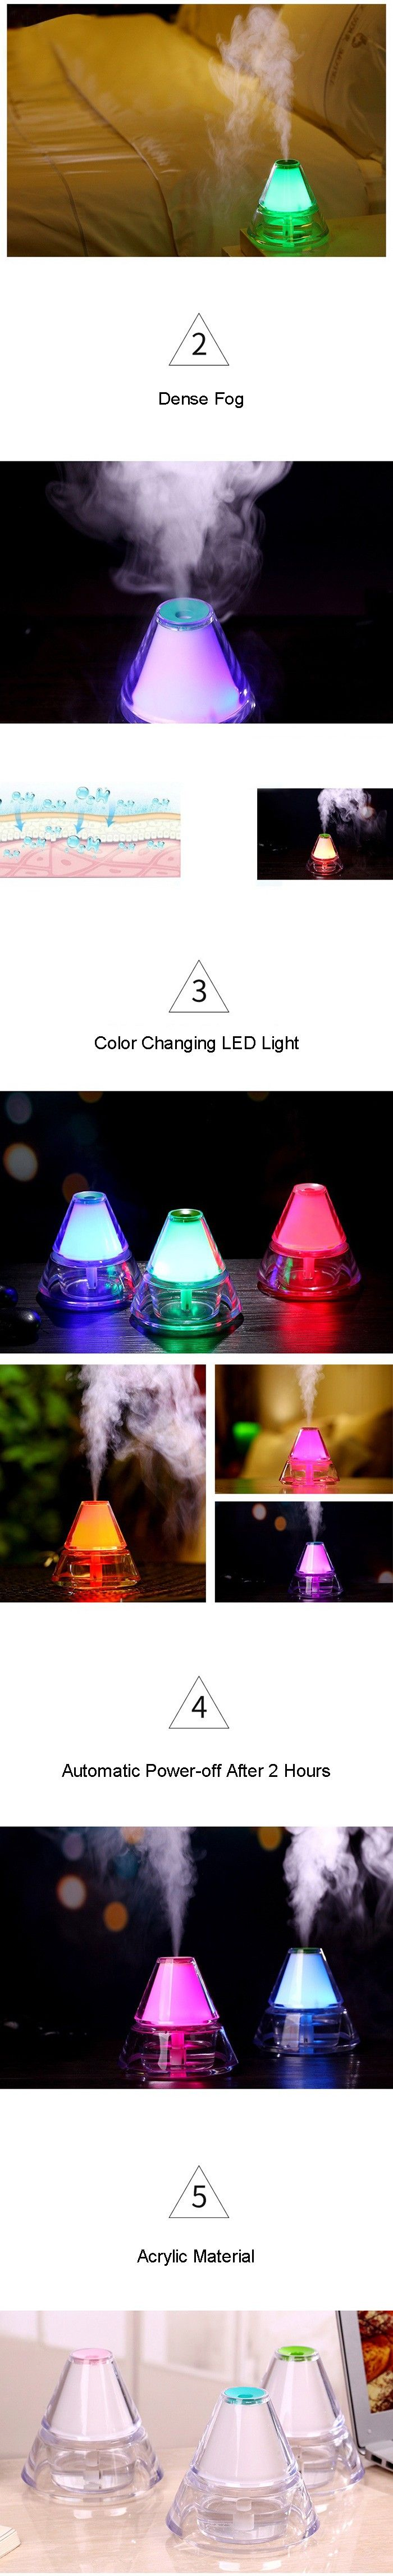 Iceberg Humidifier With Color Changing LED Night Light